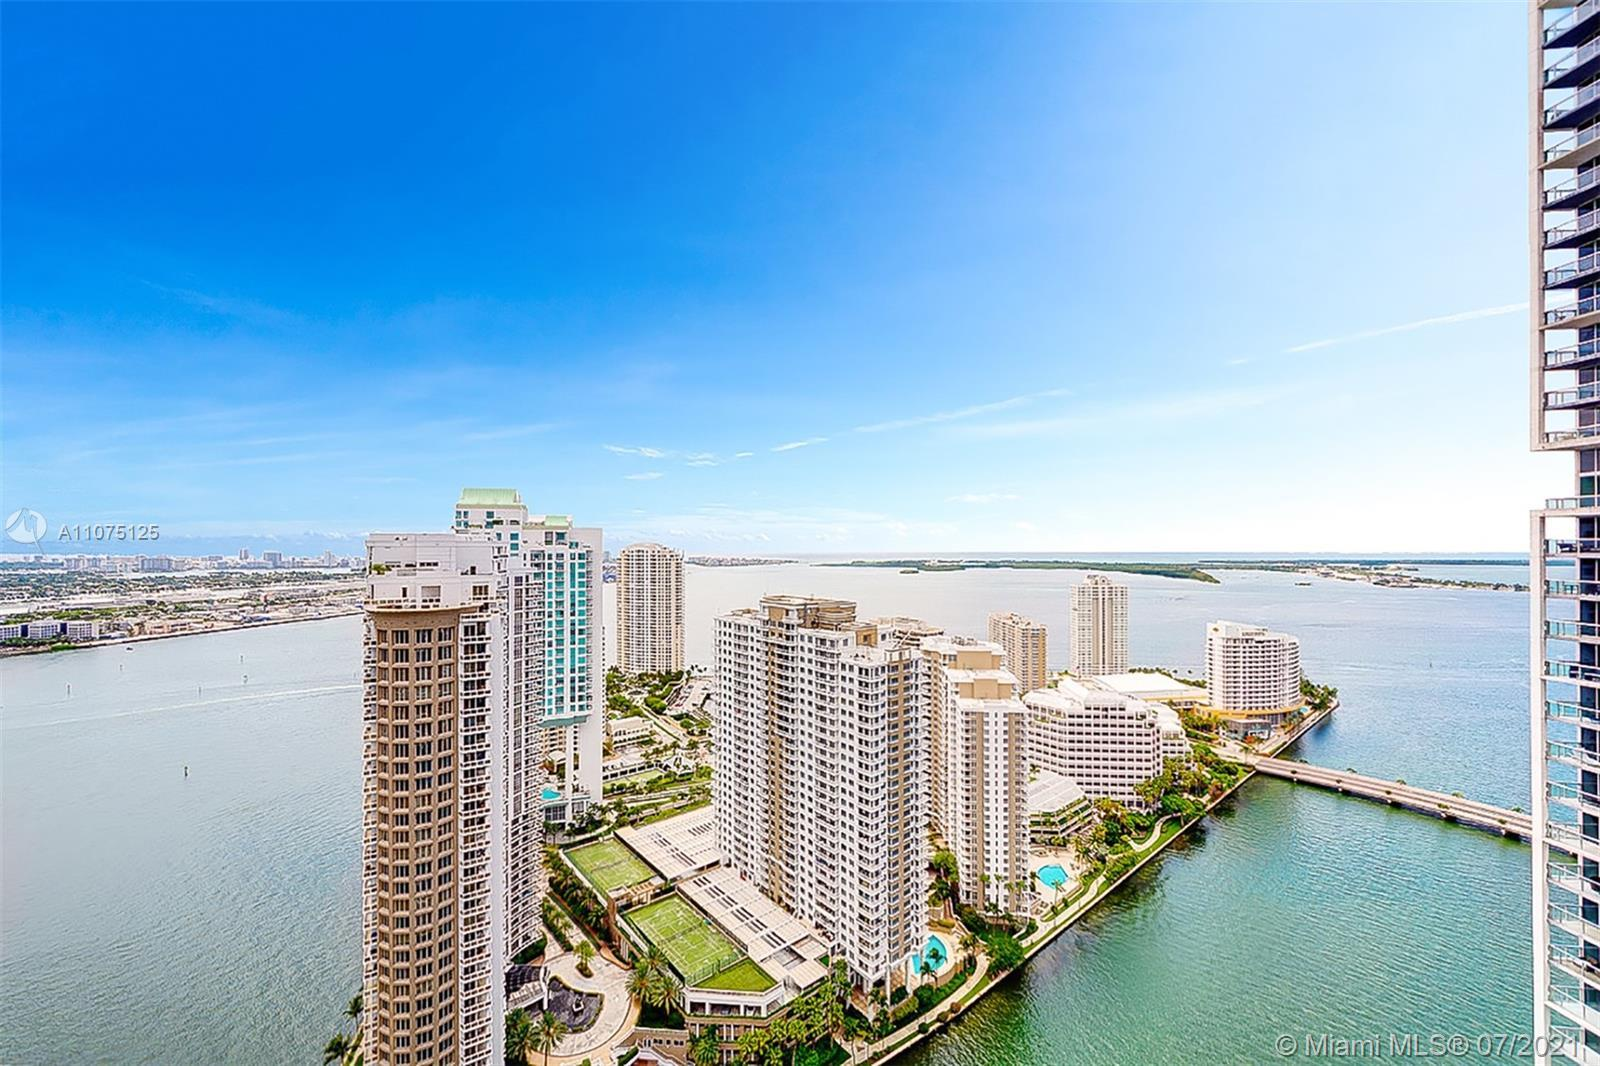 Amazing 2 Bed plus Den high above Brickell with views spanning from Sunny Isles to Key Biscayne. The